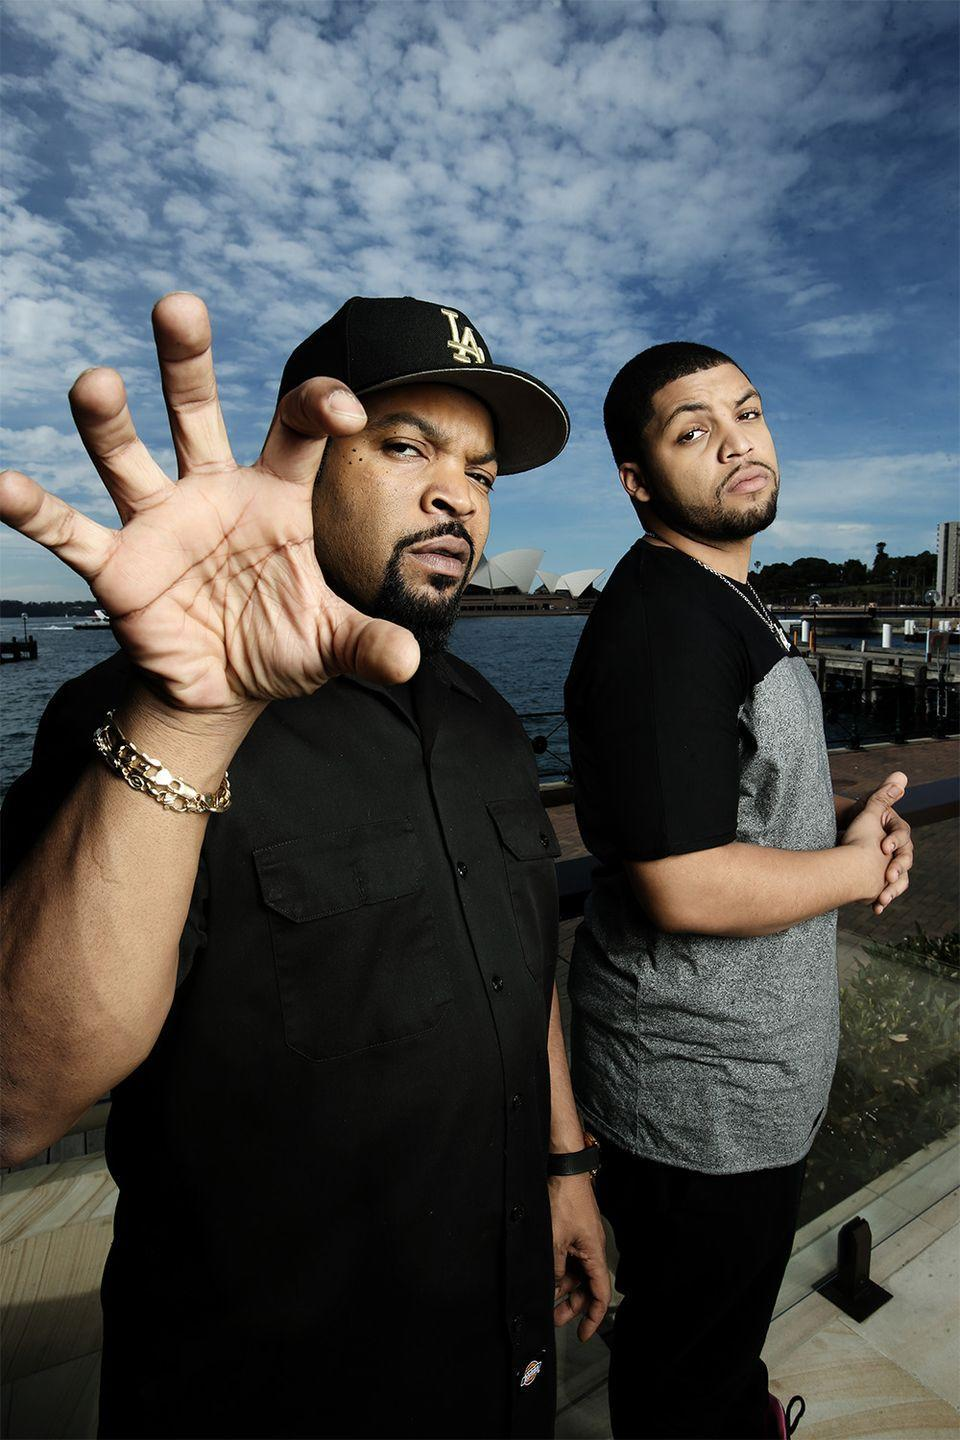 <p>Not only did rapper Ice Cube raise a son who also grew up to be a rapper, O'Shea Jackson Jr., but the two could easily be mistaken for twins. Jackson even played his dad in a movie about his life, <em>Straight Outta Compton</em>.</p>